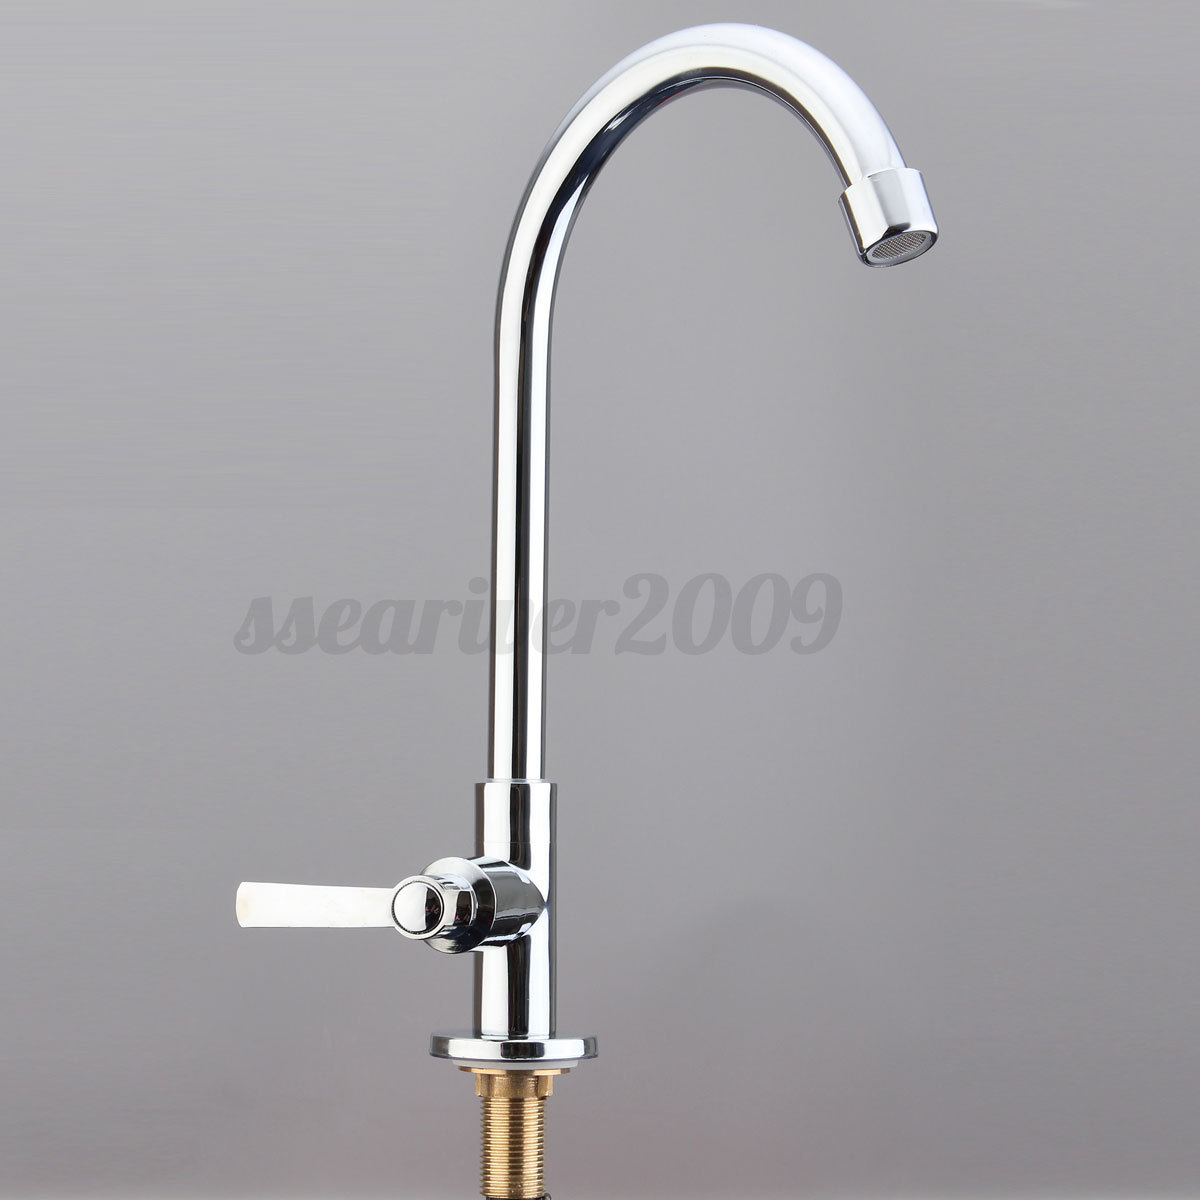 Chrome bathroom kitchen faucet water wash basin sink tap single lever with hose ebay - Connect hose to sink ...